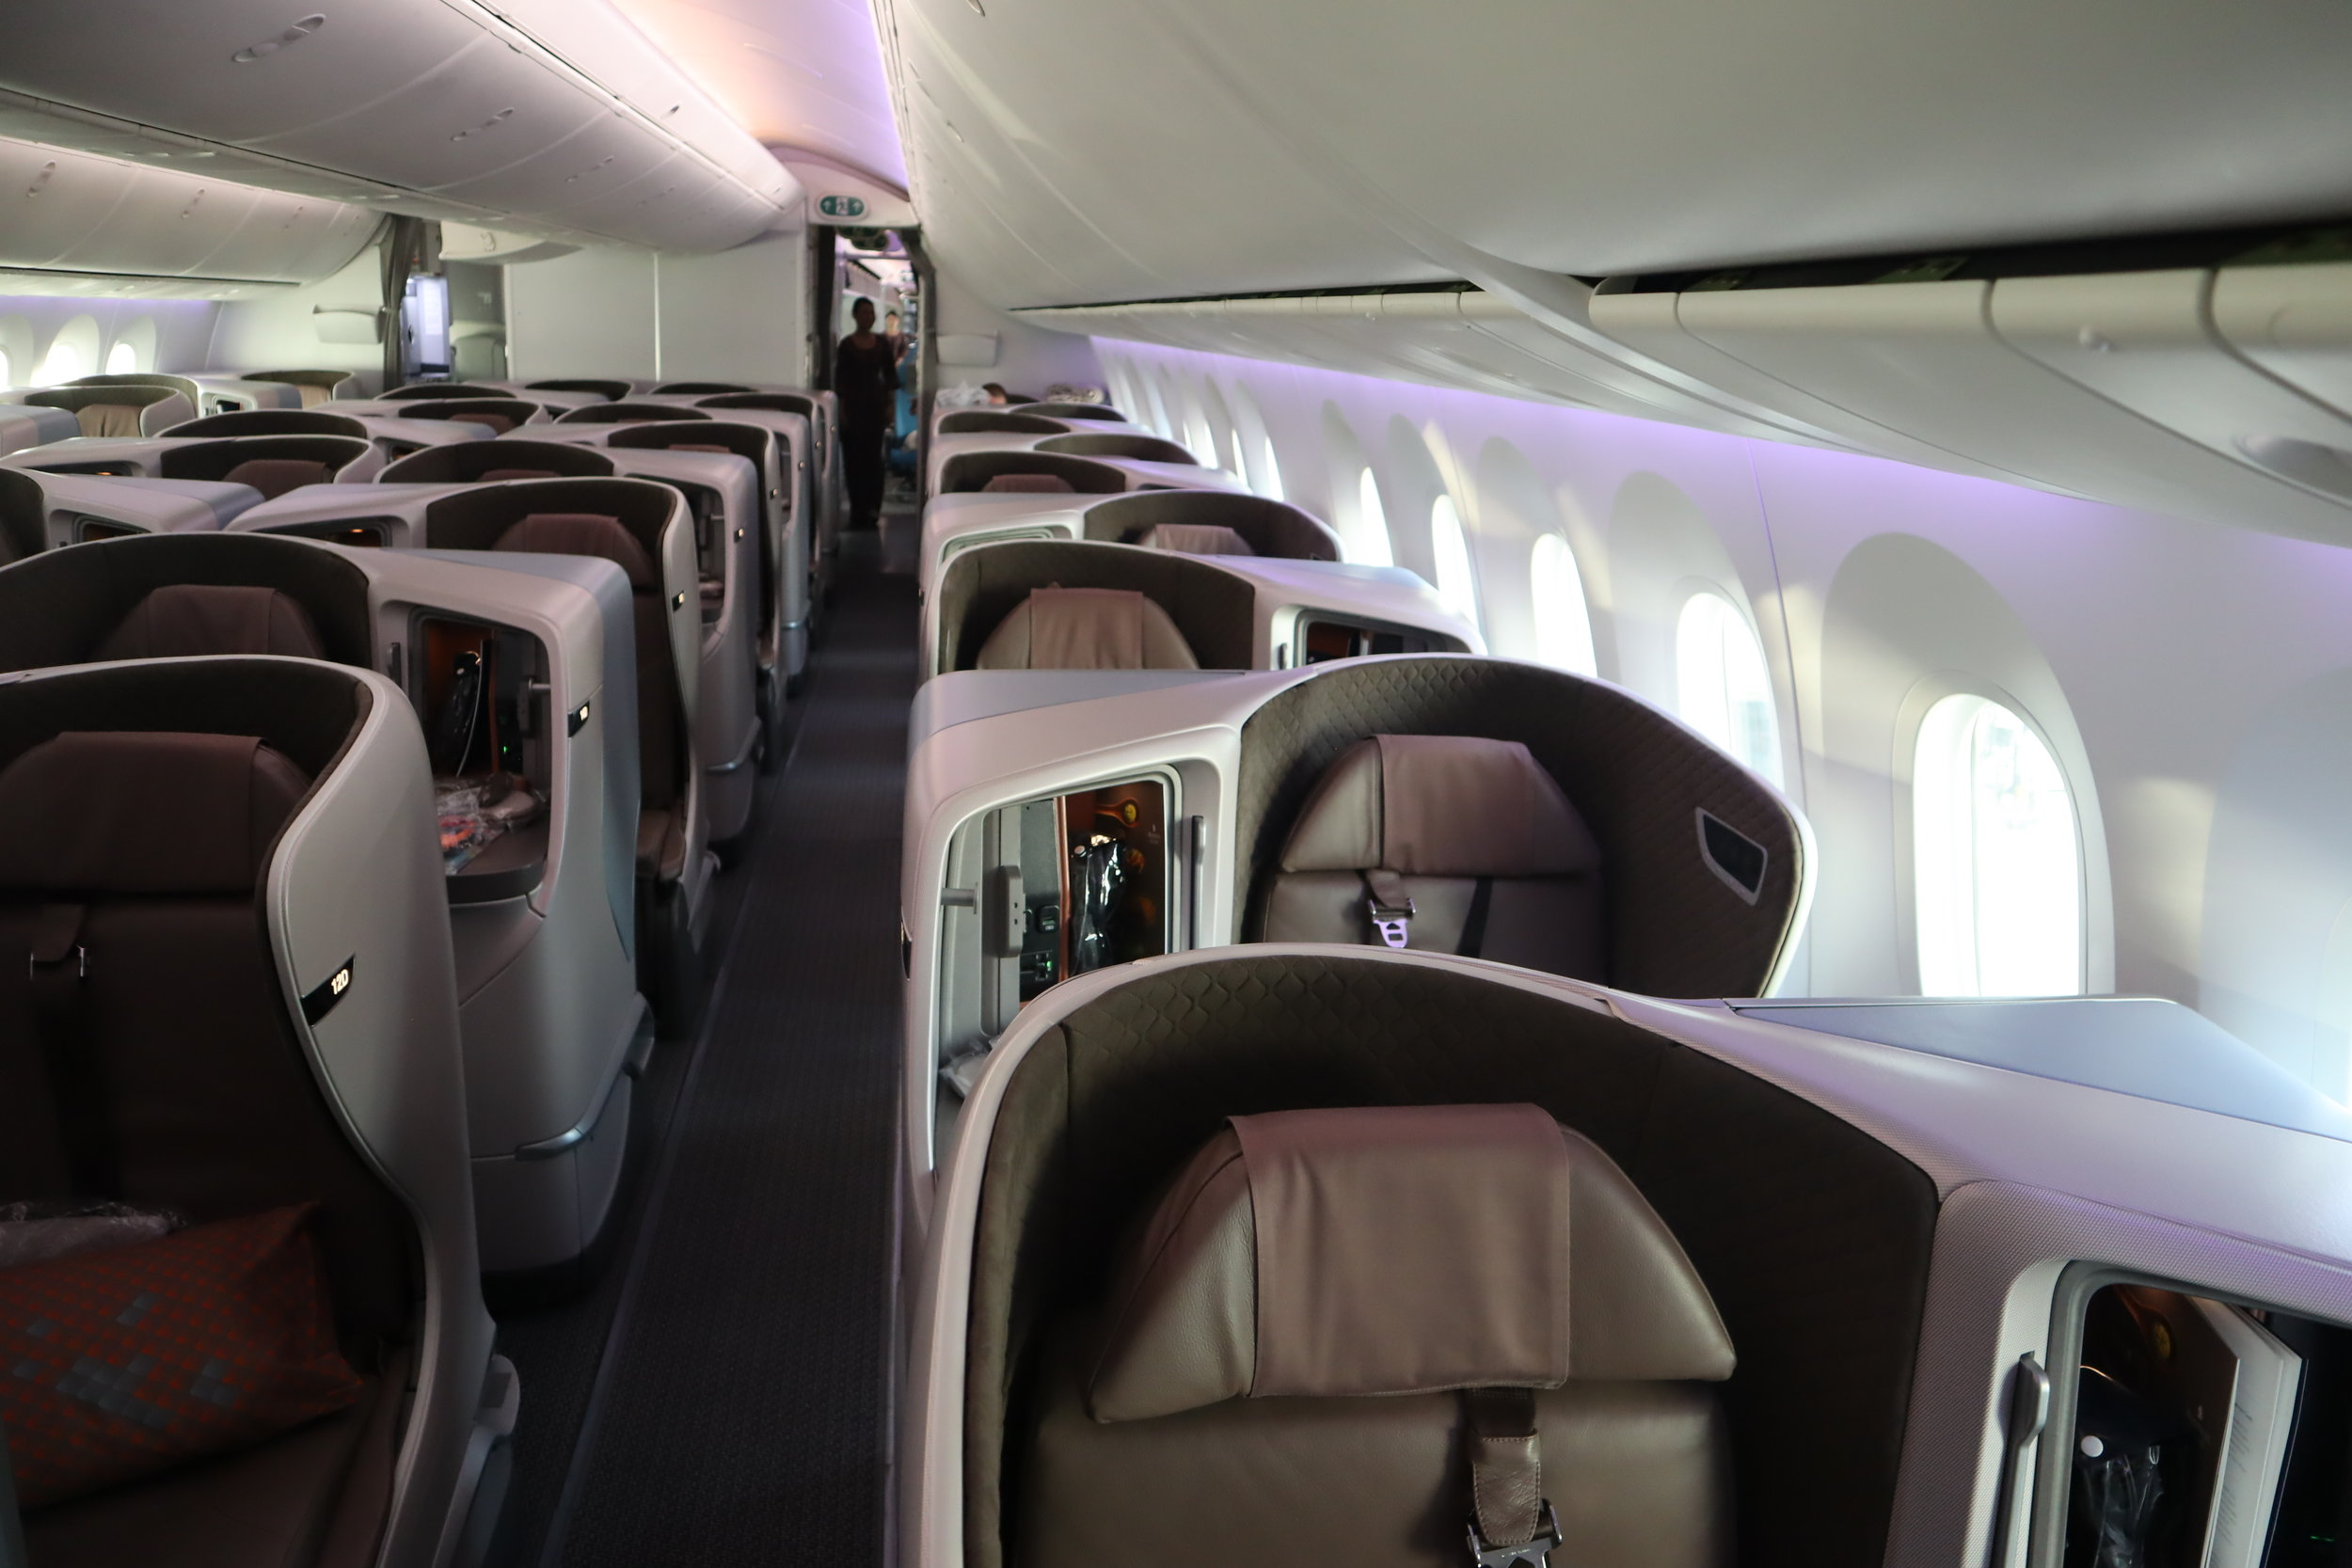 Singapore Airlines 787-10 business class – Cabin